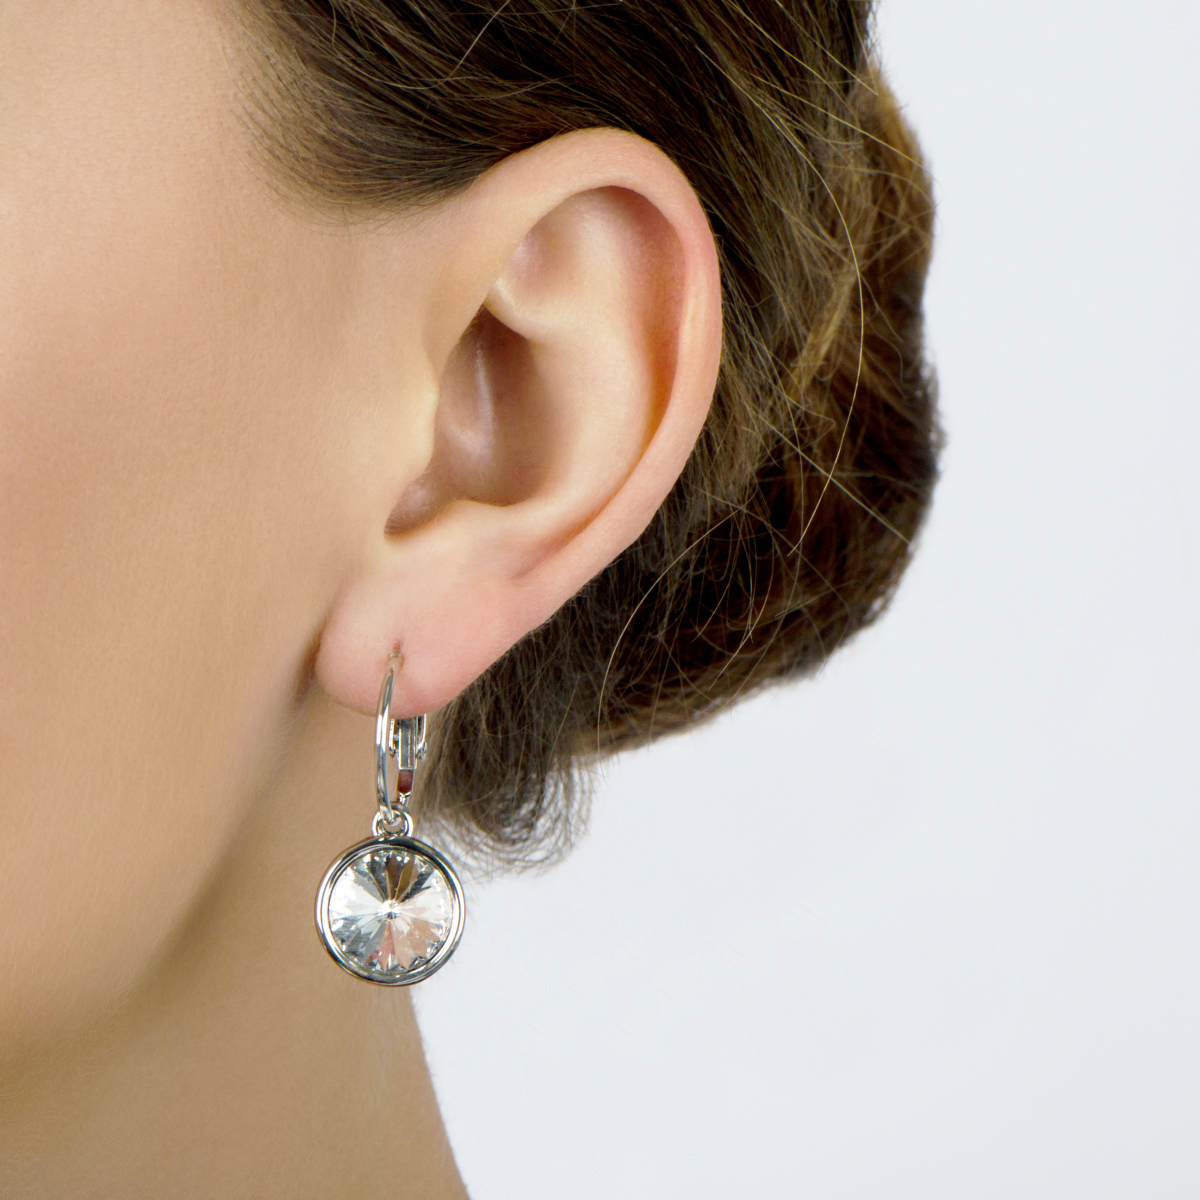 Obelia's 7mm Round Cut Crystal Leverback Earrings